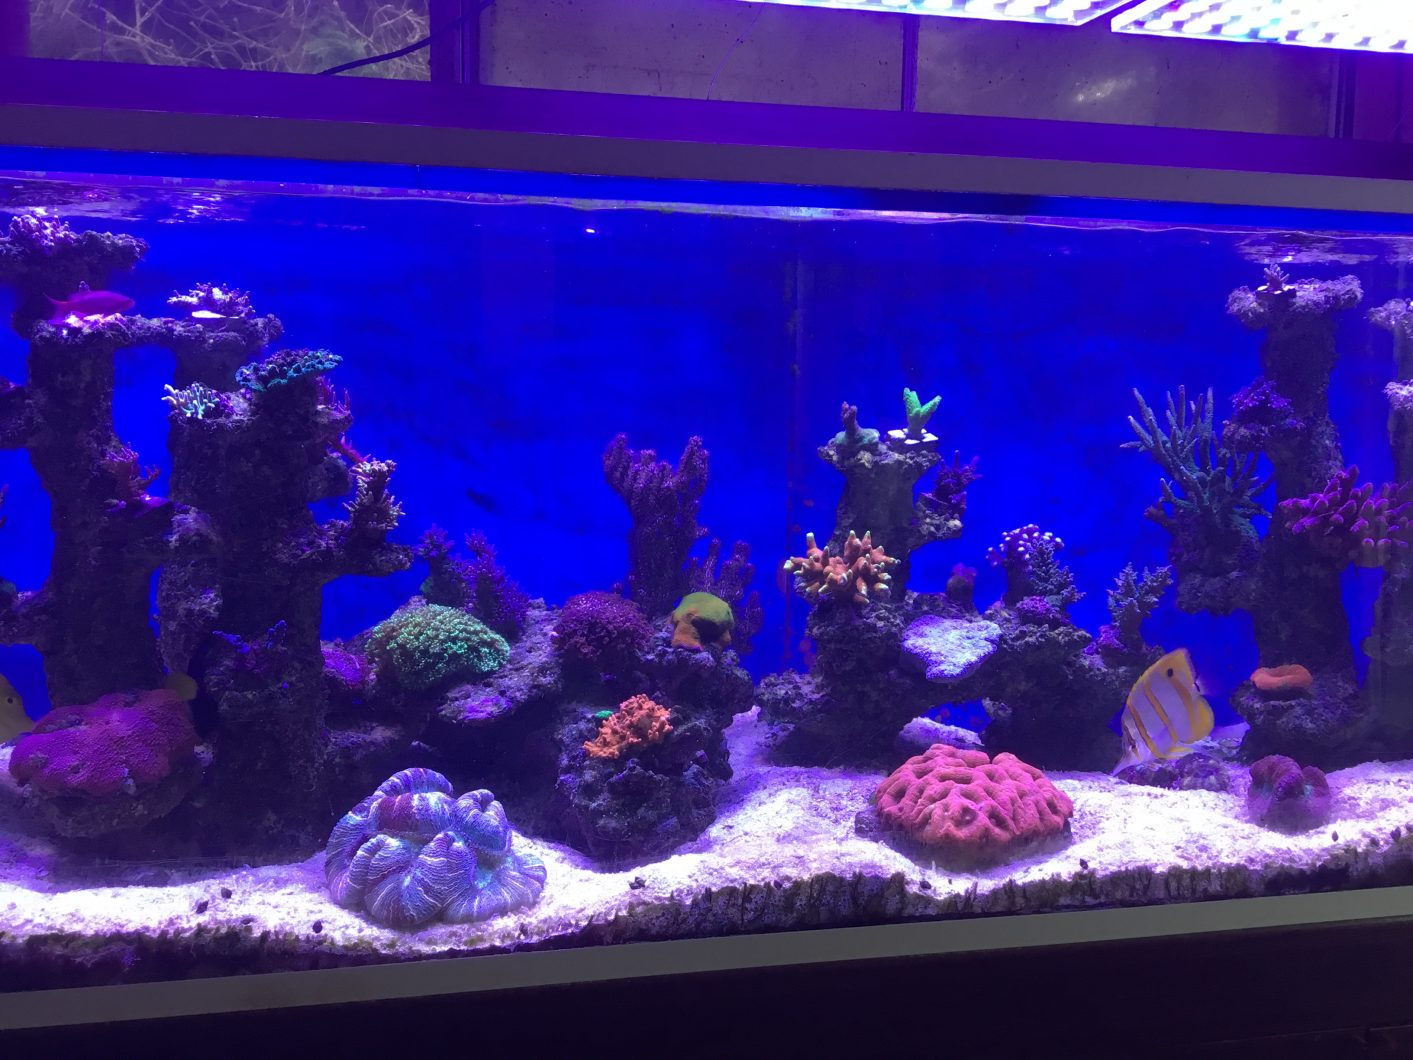 reef-akvarium-LED-lys-orphek